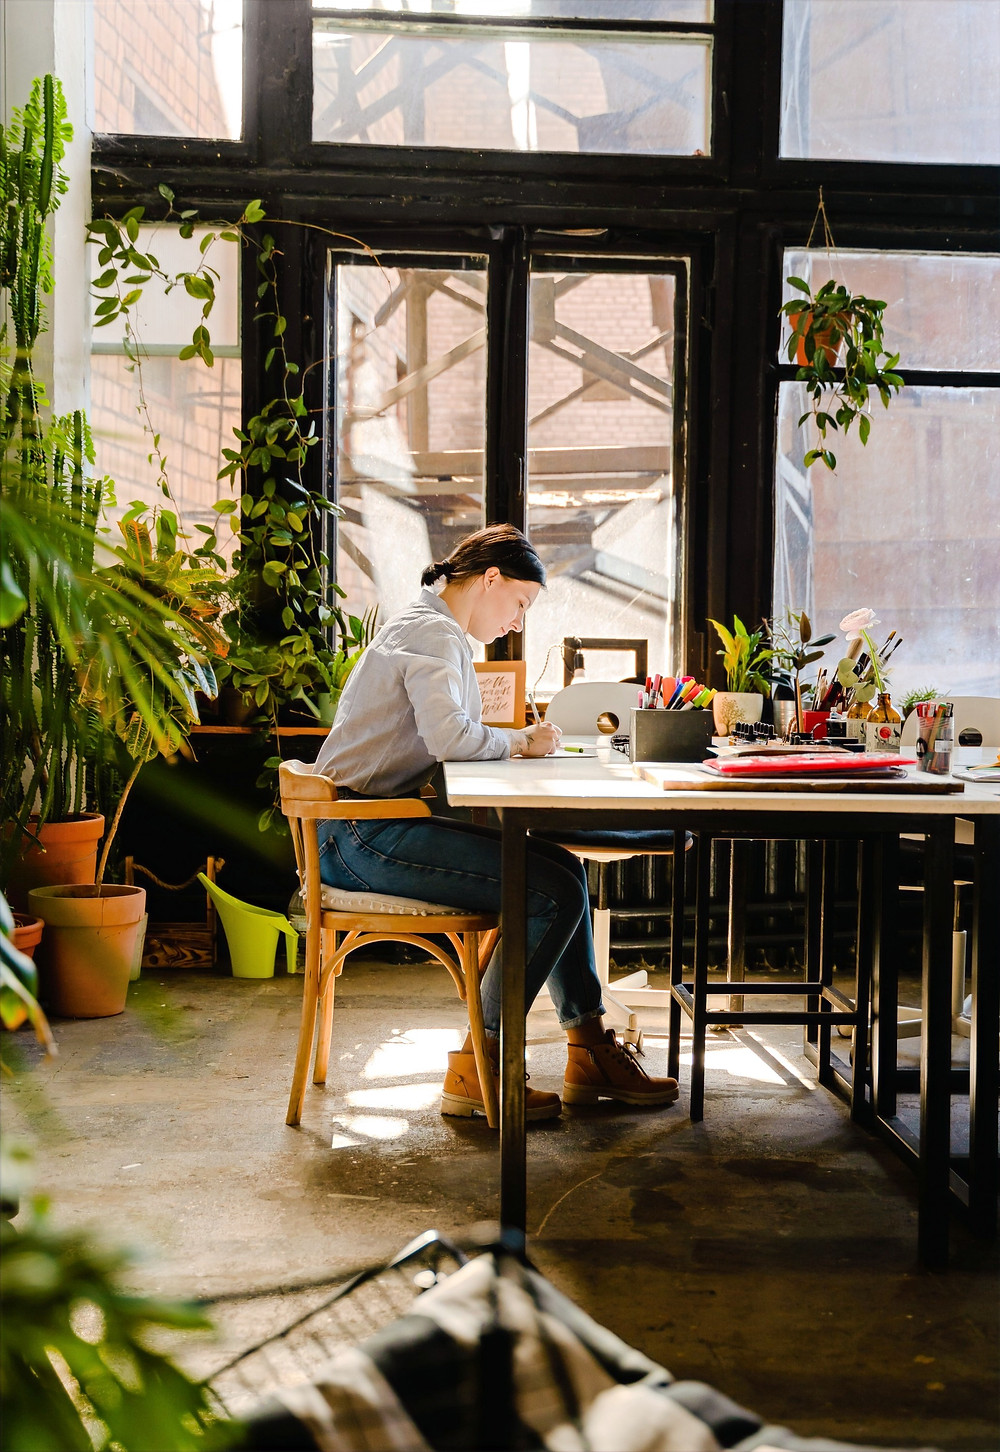 A writer works diligently at a desk alone in the middle of a sun-lit room decorated with plants.